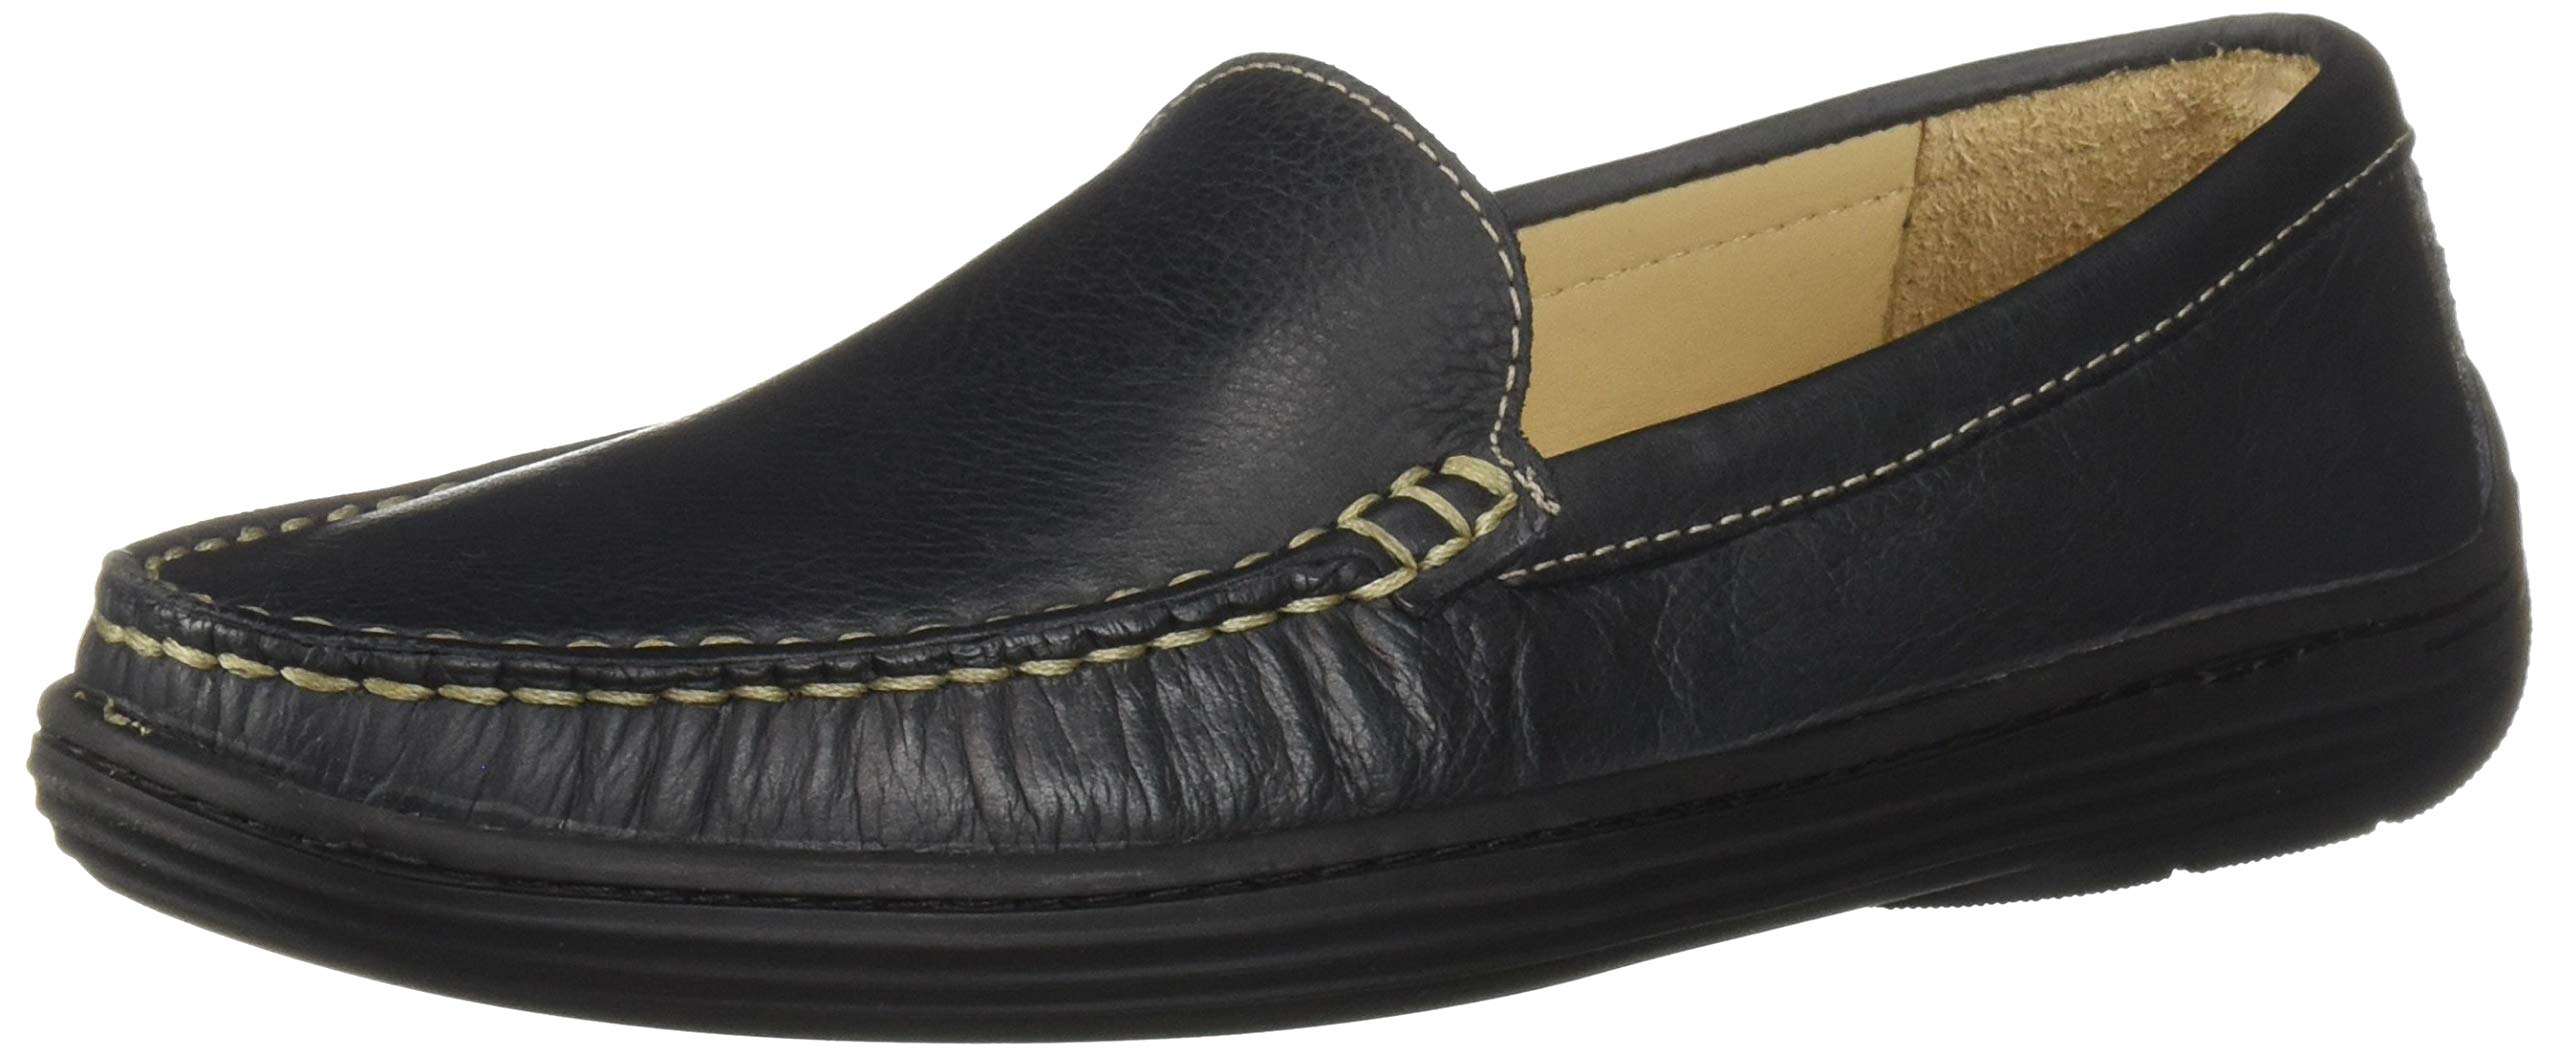 Driver Club USA Unisex Leather Boys/Girls Casual Comfort Slip On Moccasin Venetian Loafer Driving Style, Navy Grainy, 3.5 M US Little Kid